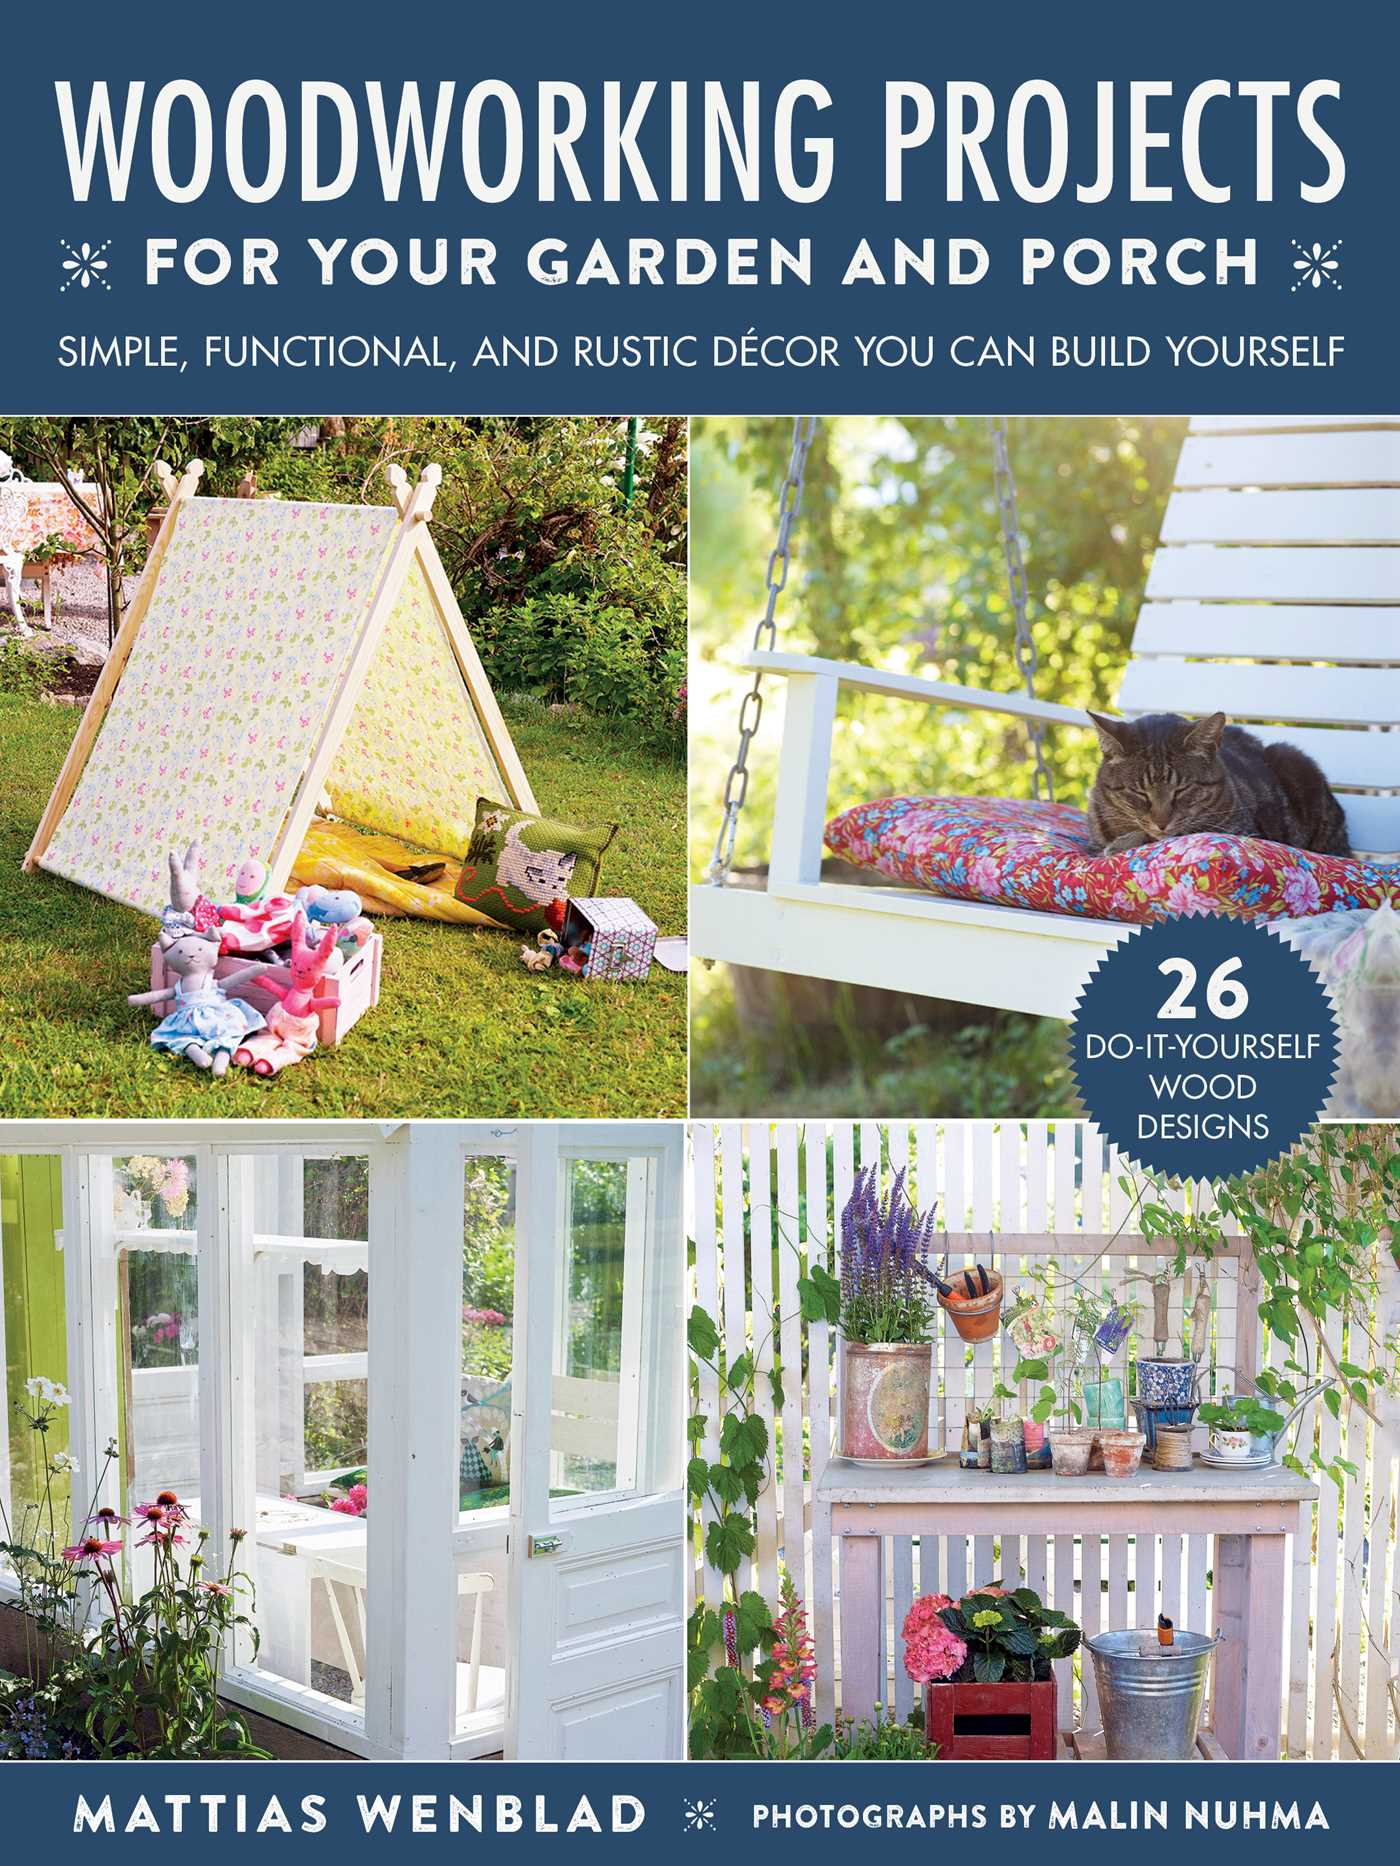 Woodworking Projects For Your Garden And Porch Book By Mattias Wenblad Malin Nuhma Gun Penhoat Official Publisher Page Simon Schuster